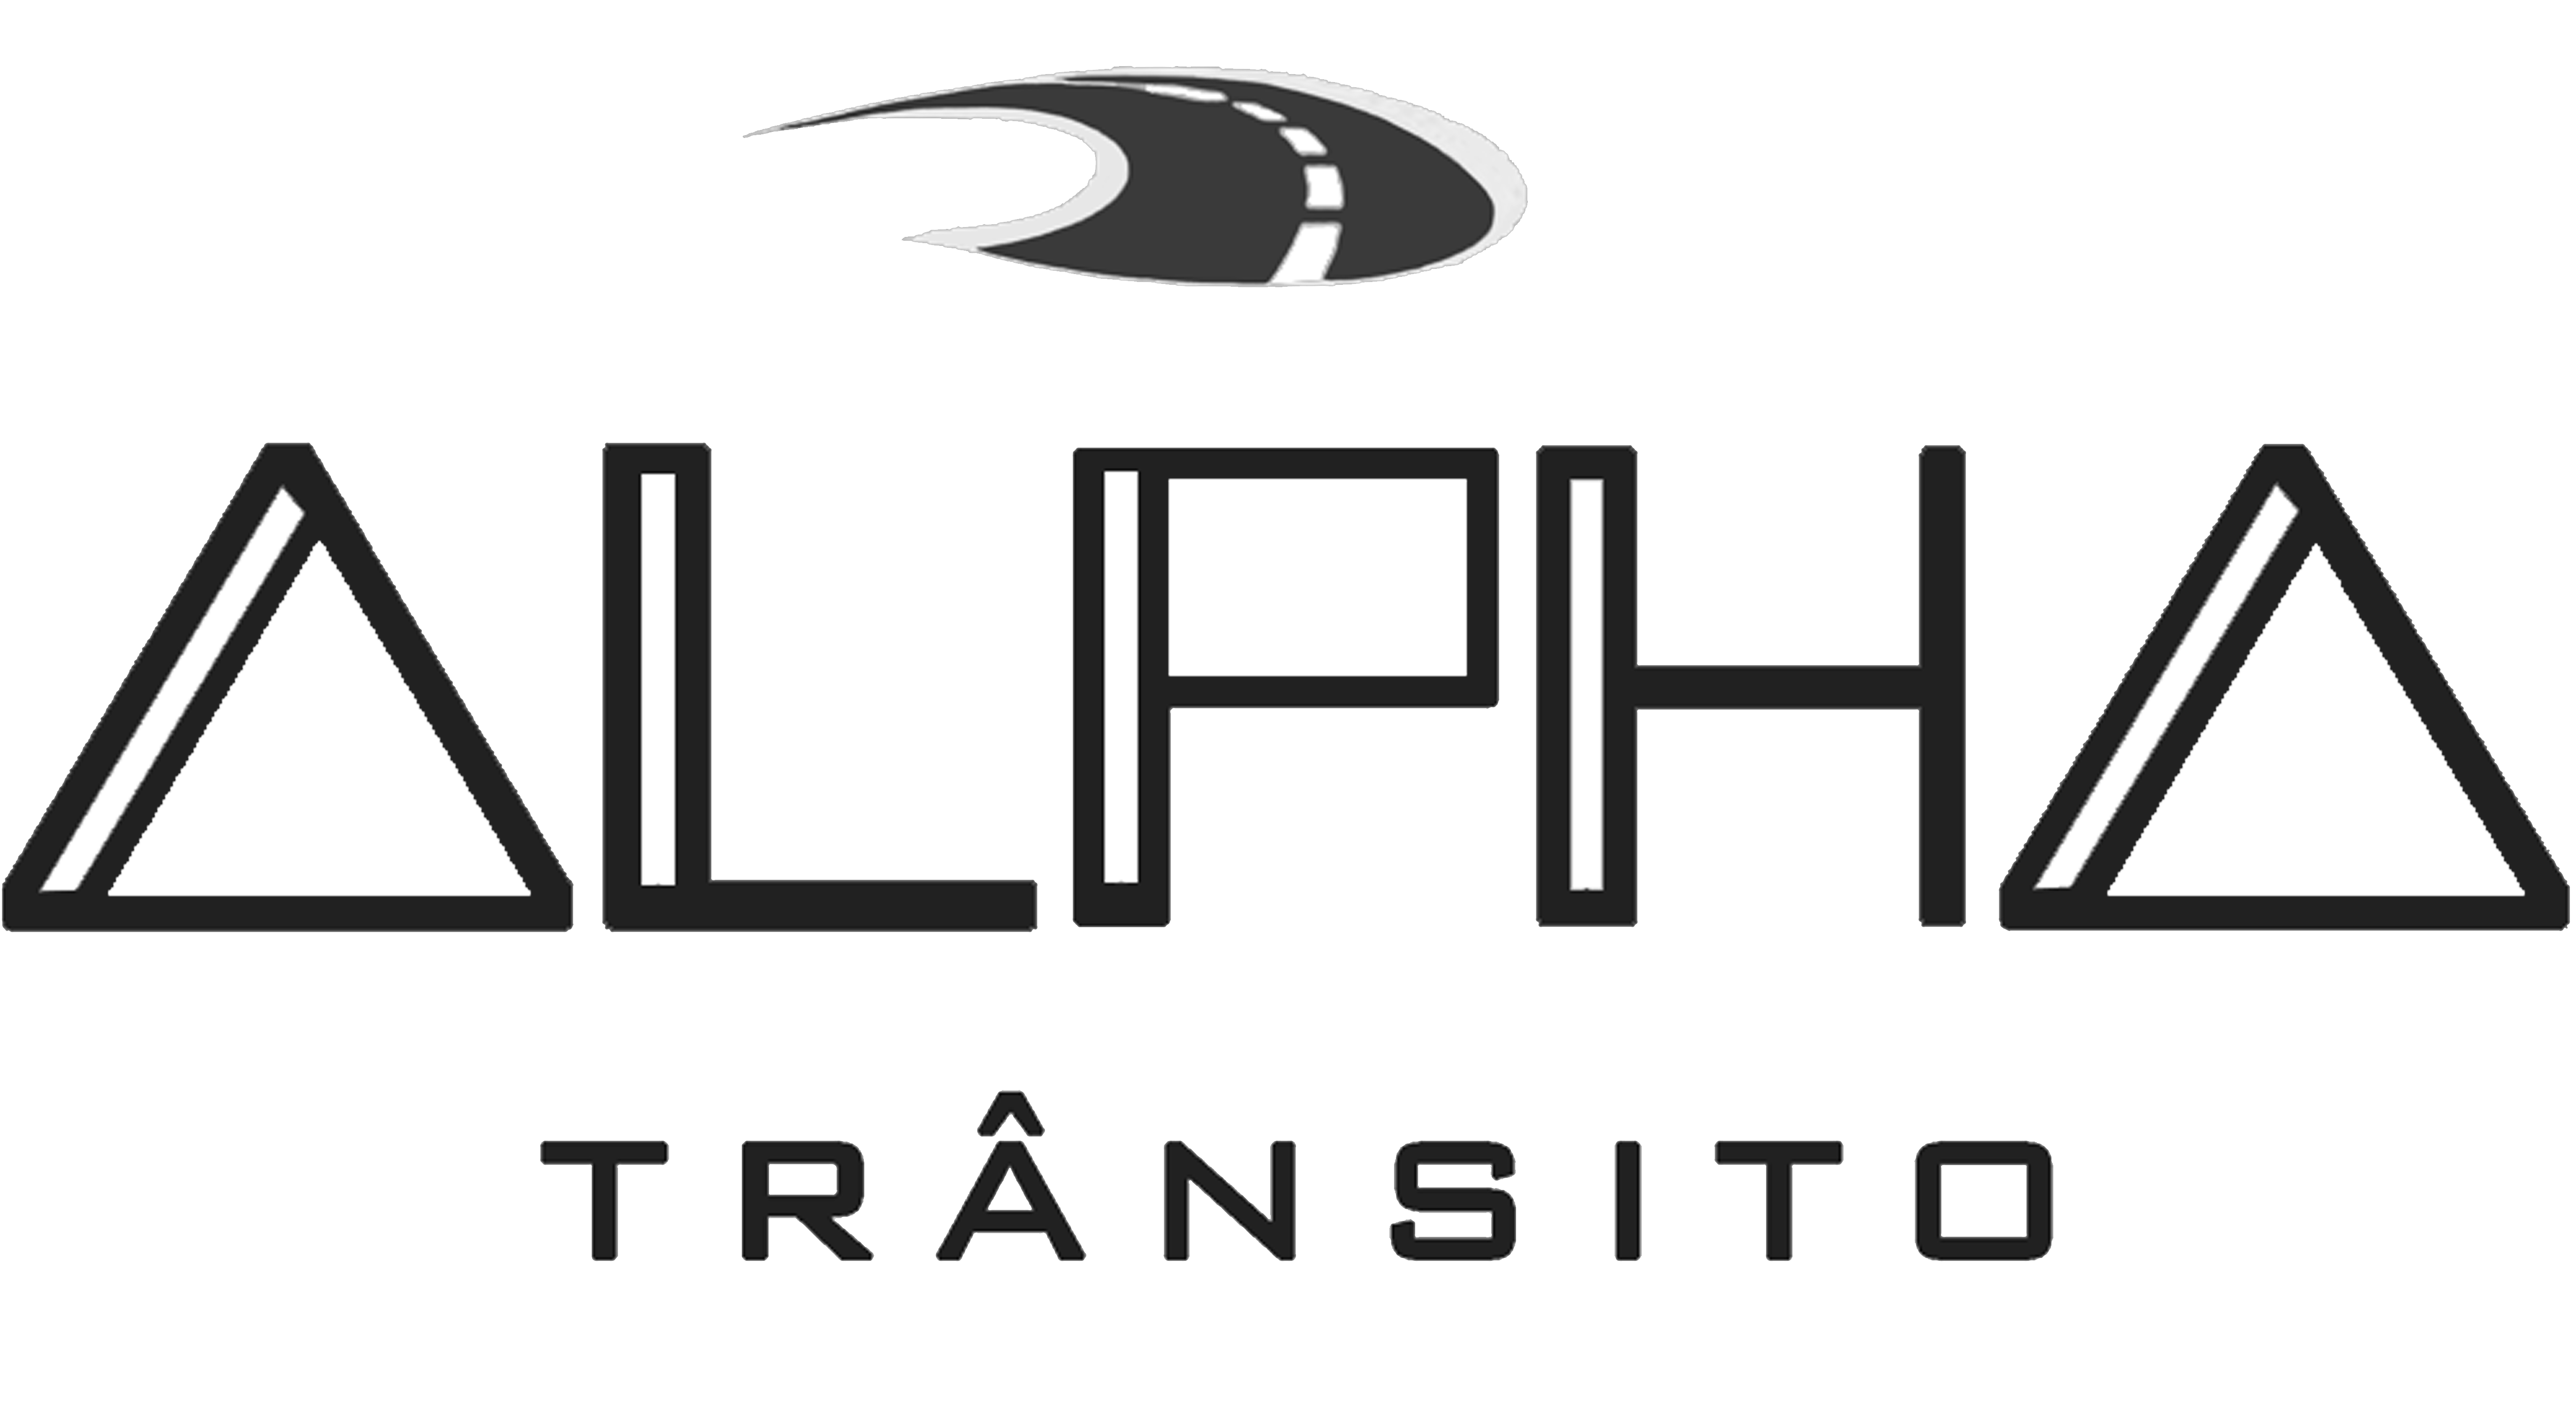 Home: Alpha Transito